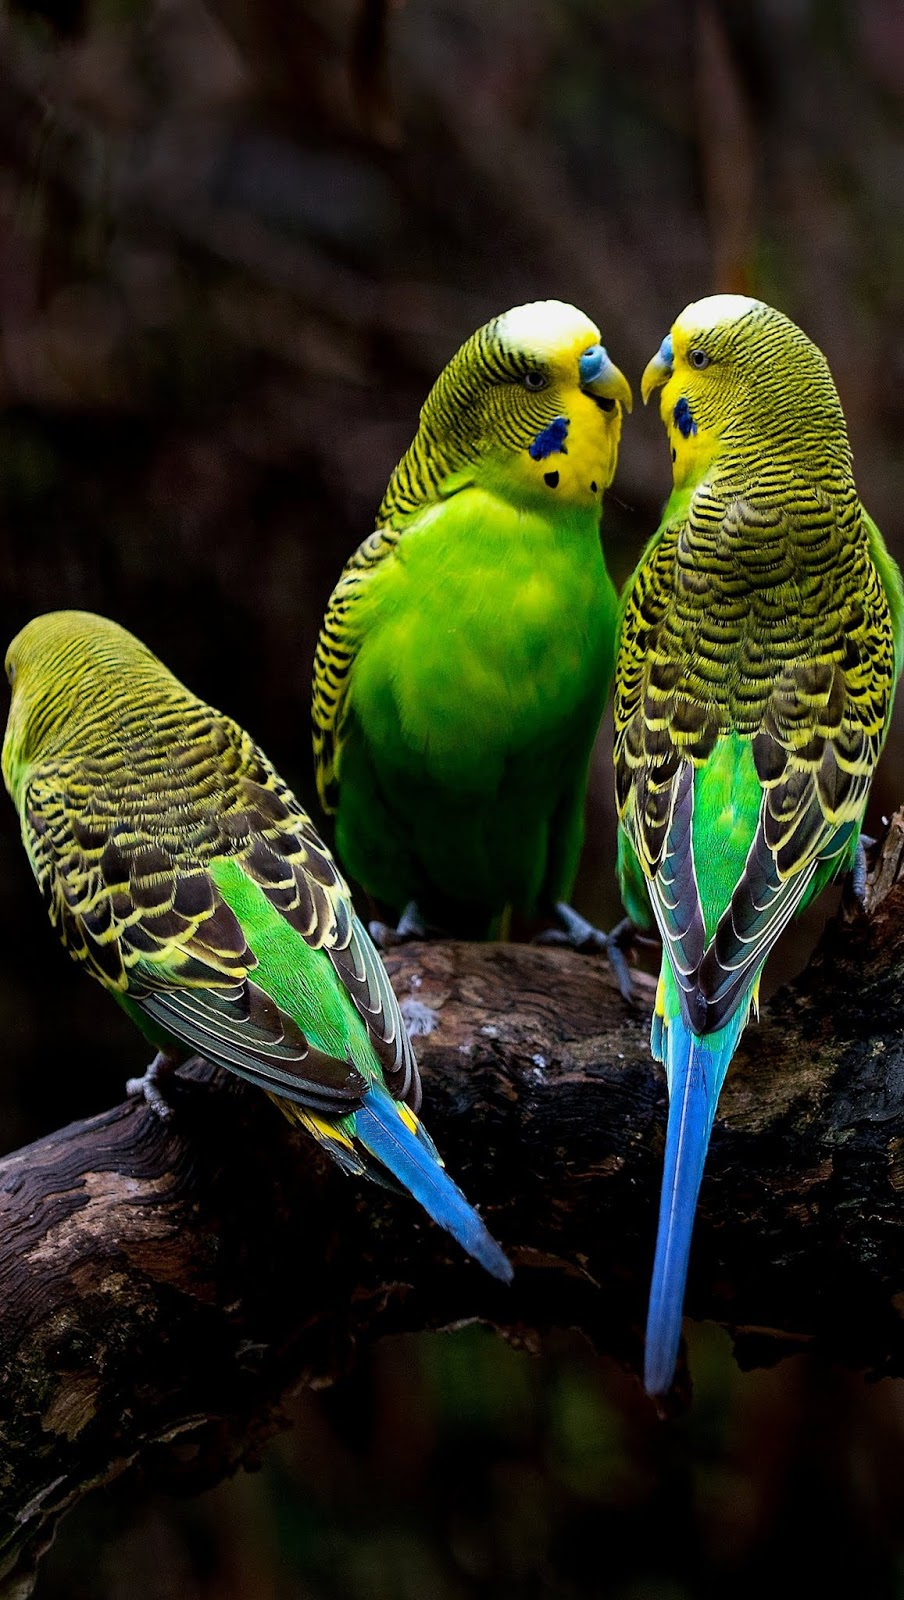 Picture of three budgerigars.